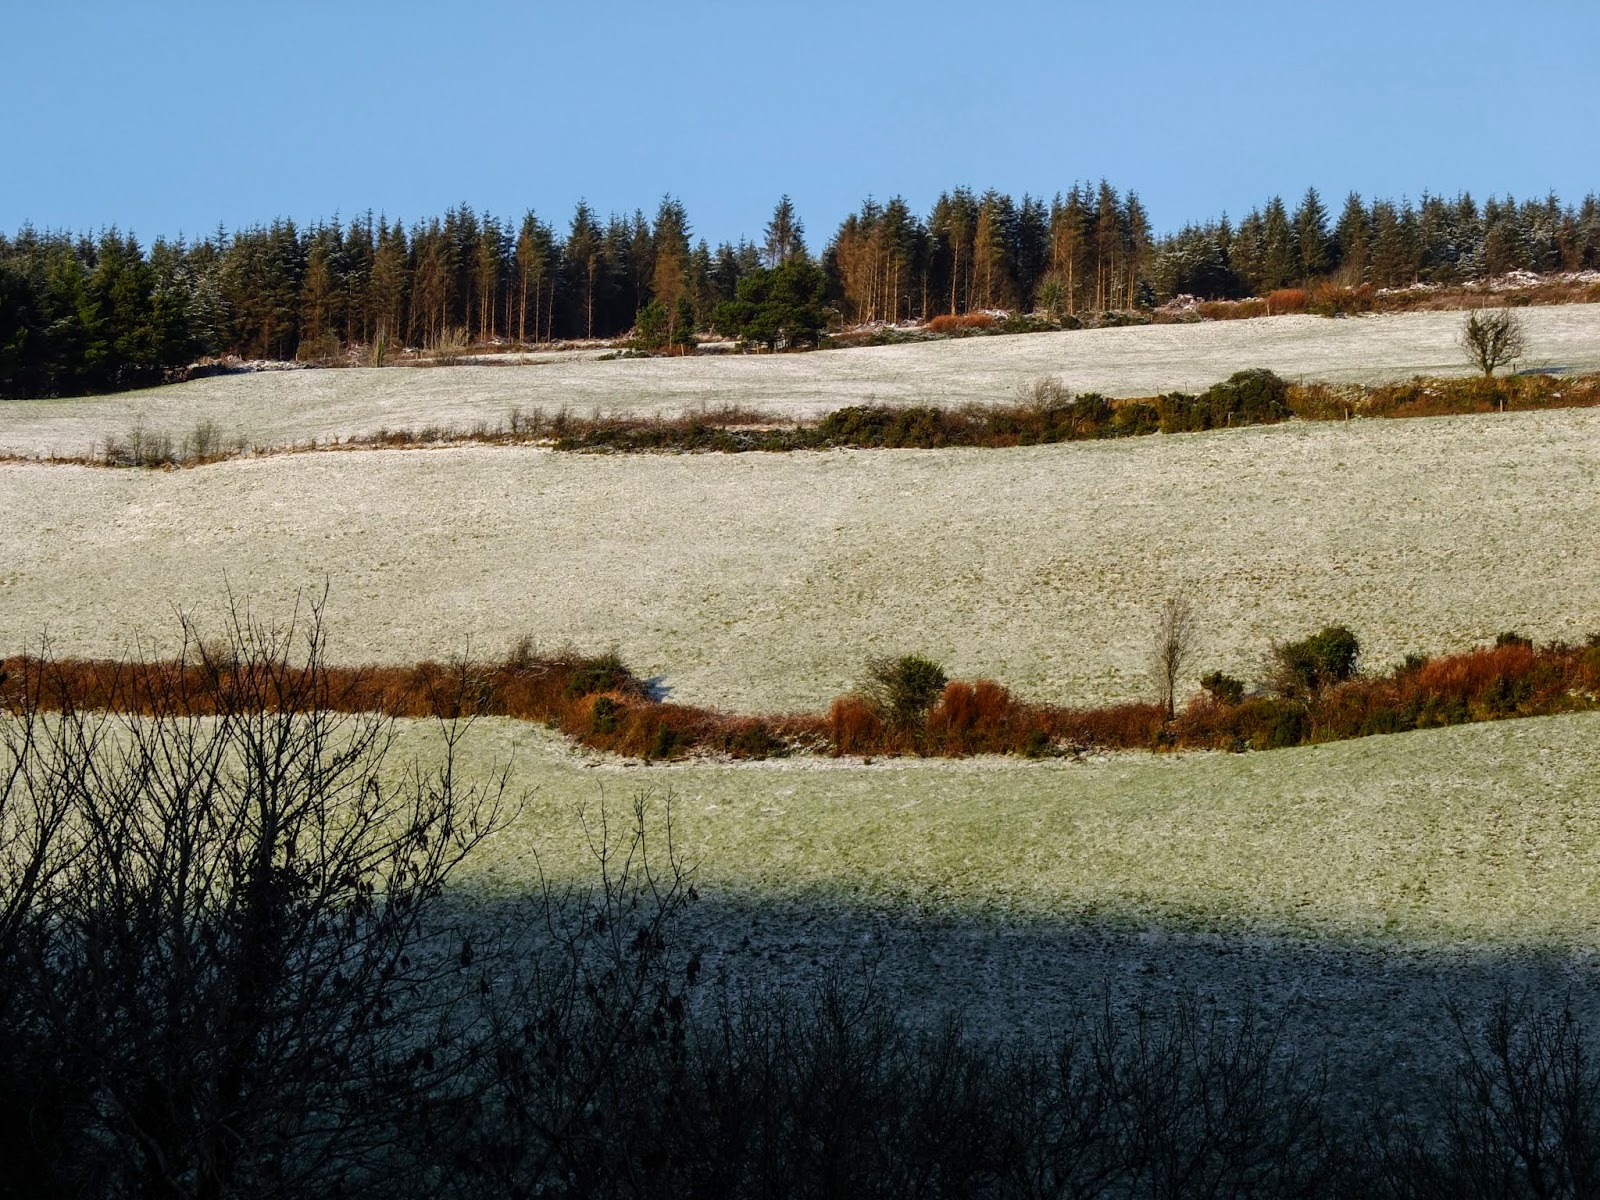 Snow slowly disappearing from a hillside in North County Cork on a sunny day.